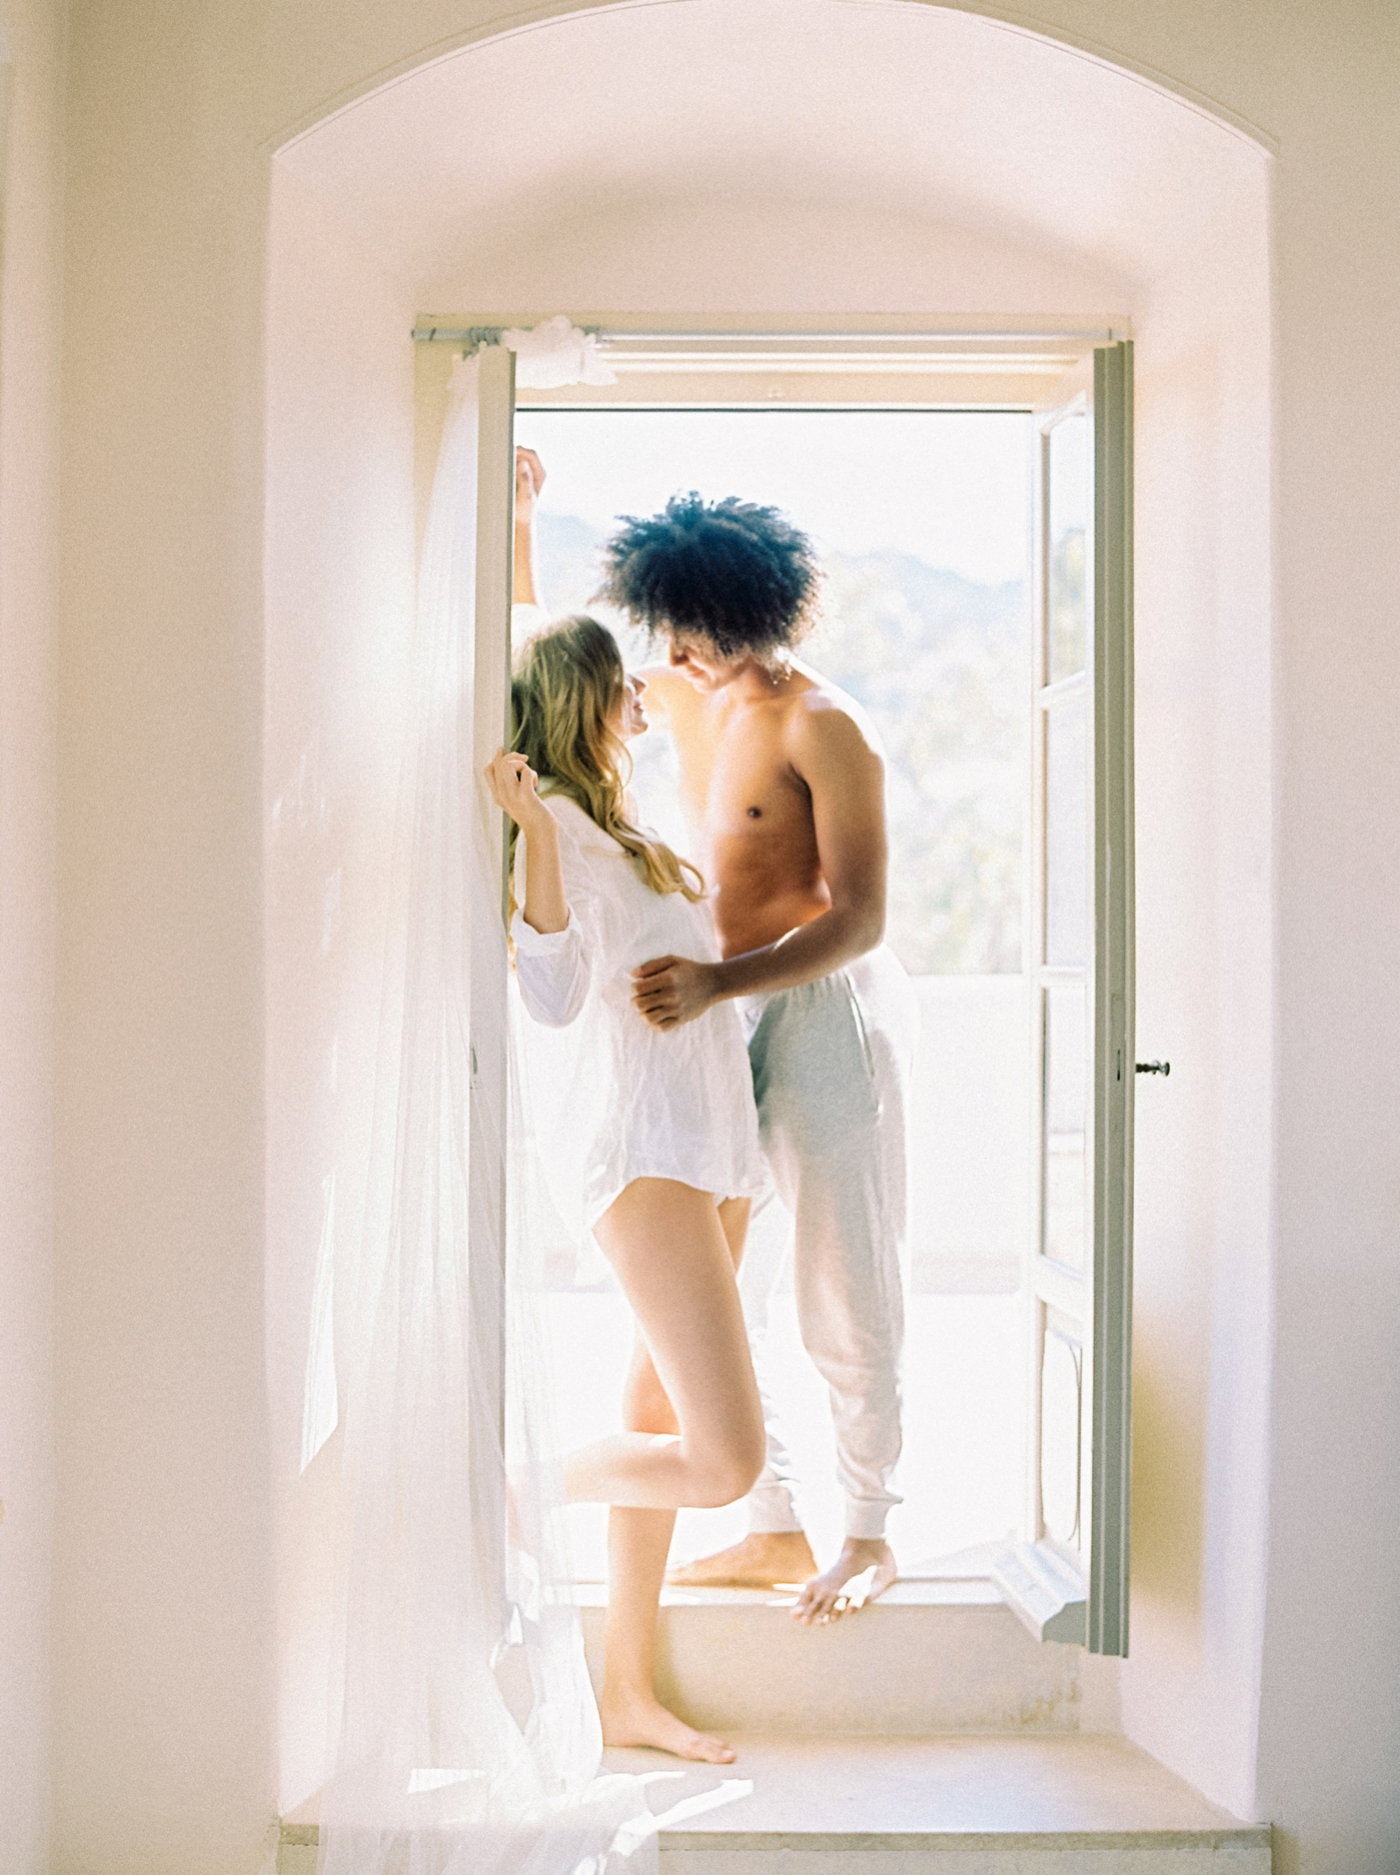 greece destination wedding photographer | intimate at home lifestyle session | engagement photo ideas | film photography